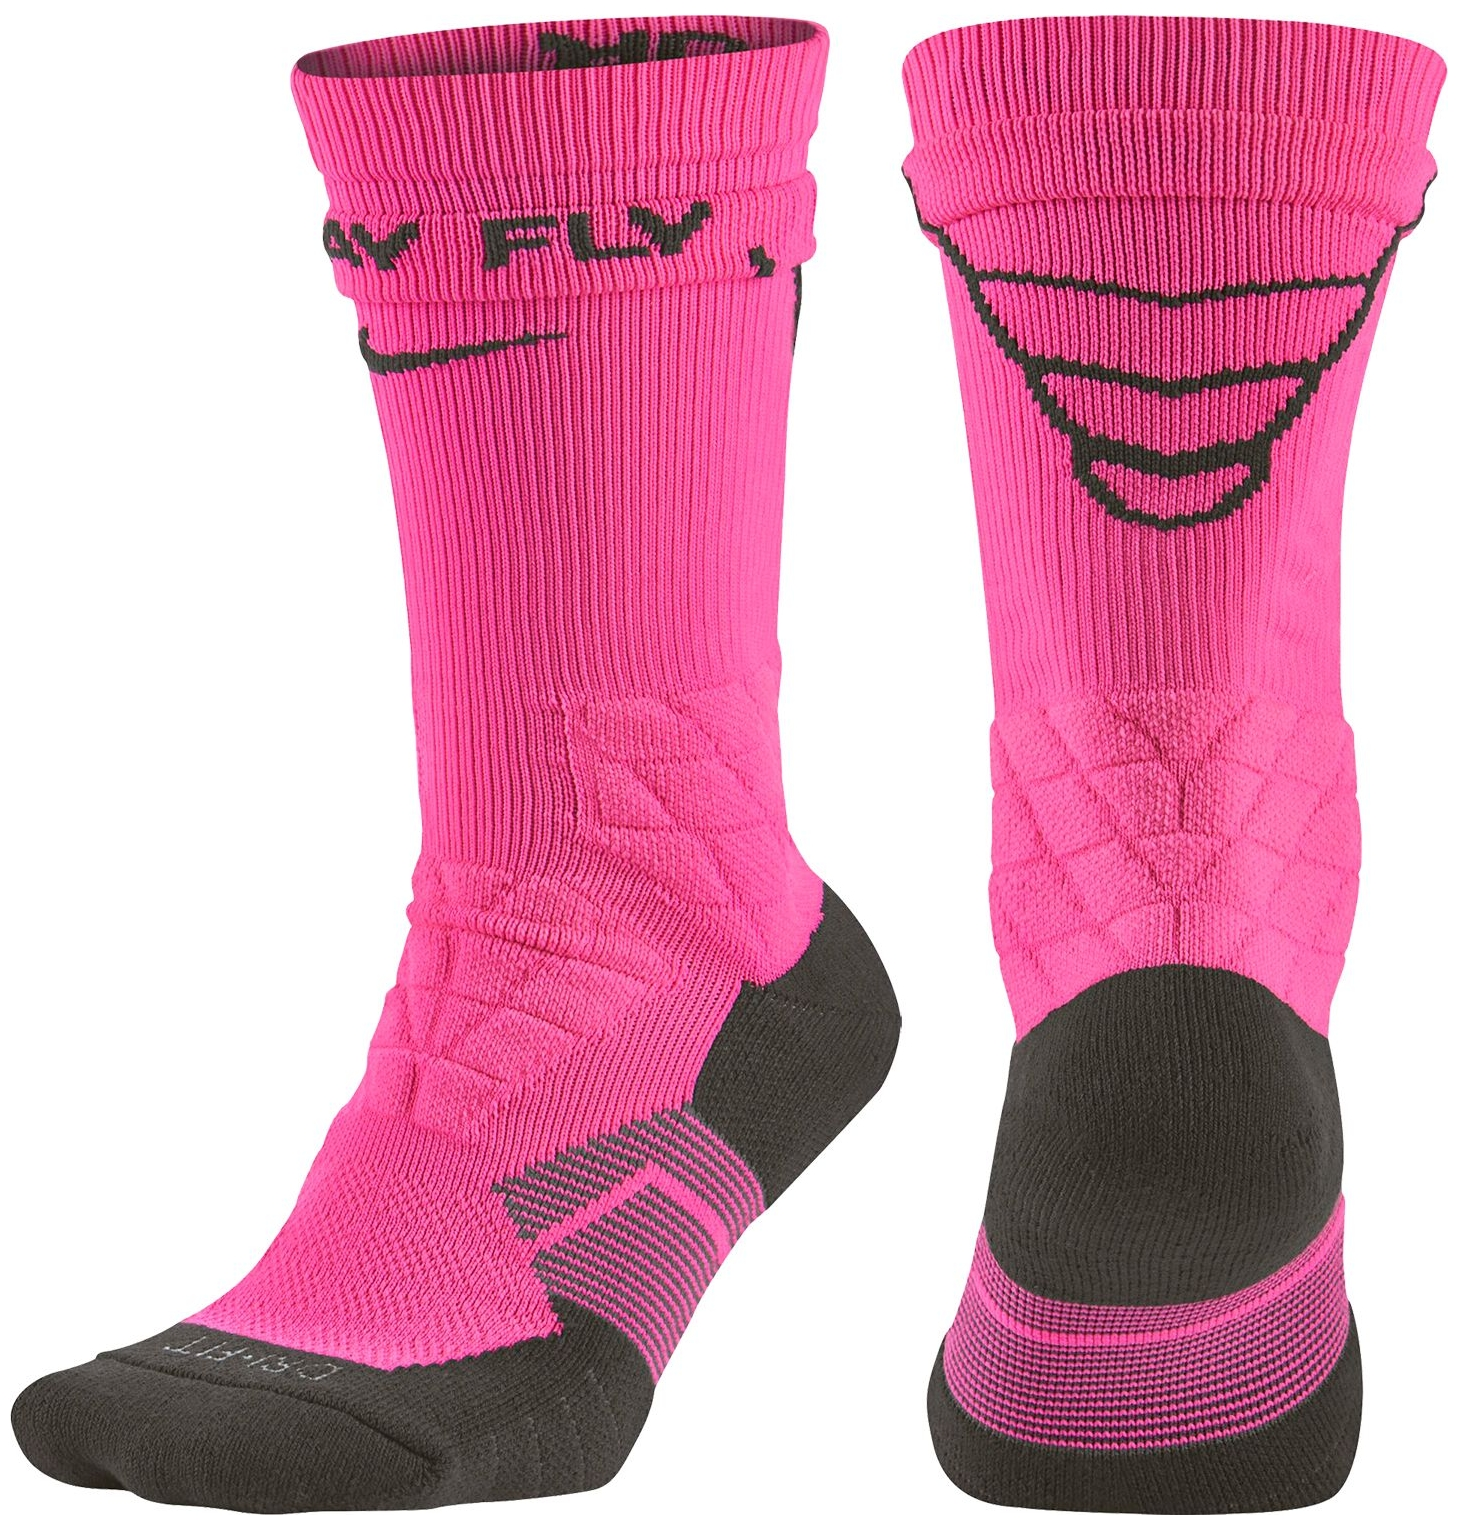 Nike Dri-FIT 2.0 Vapor Elite Crew Football Socks (Pink Po...